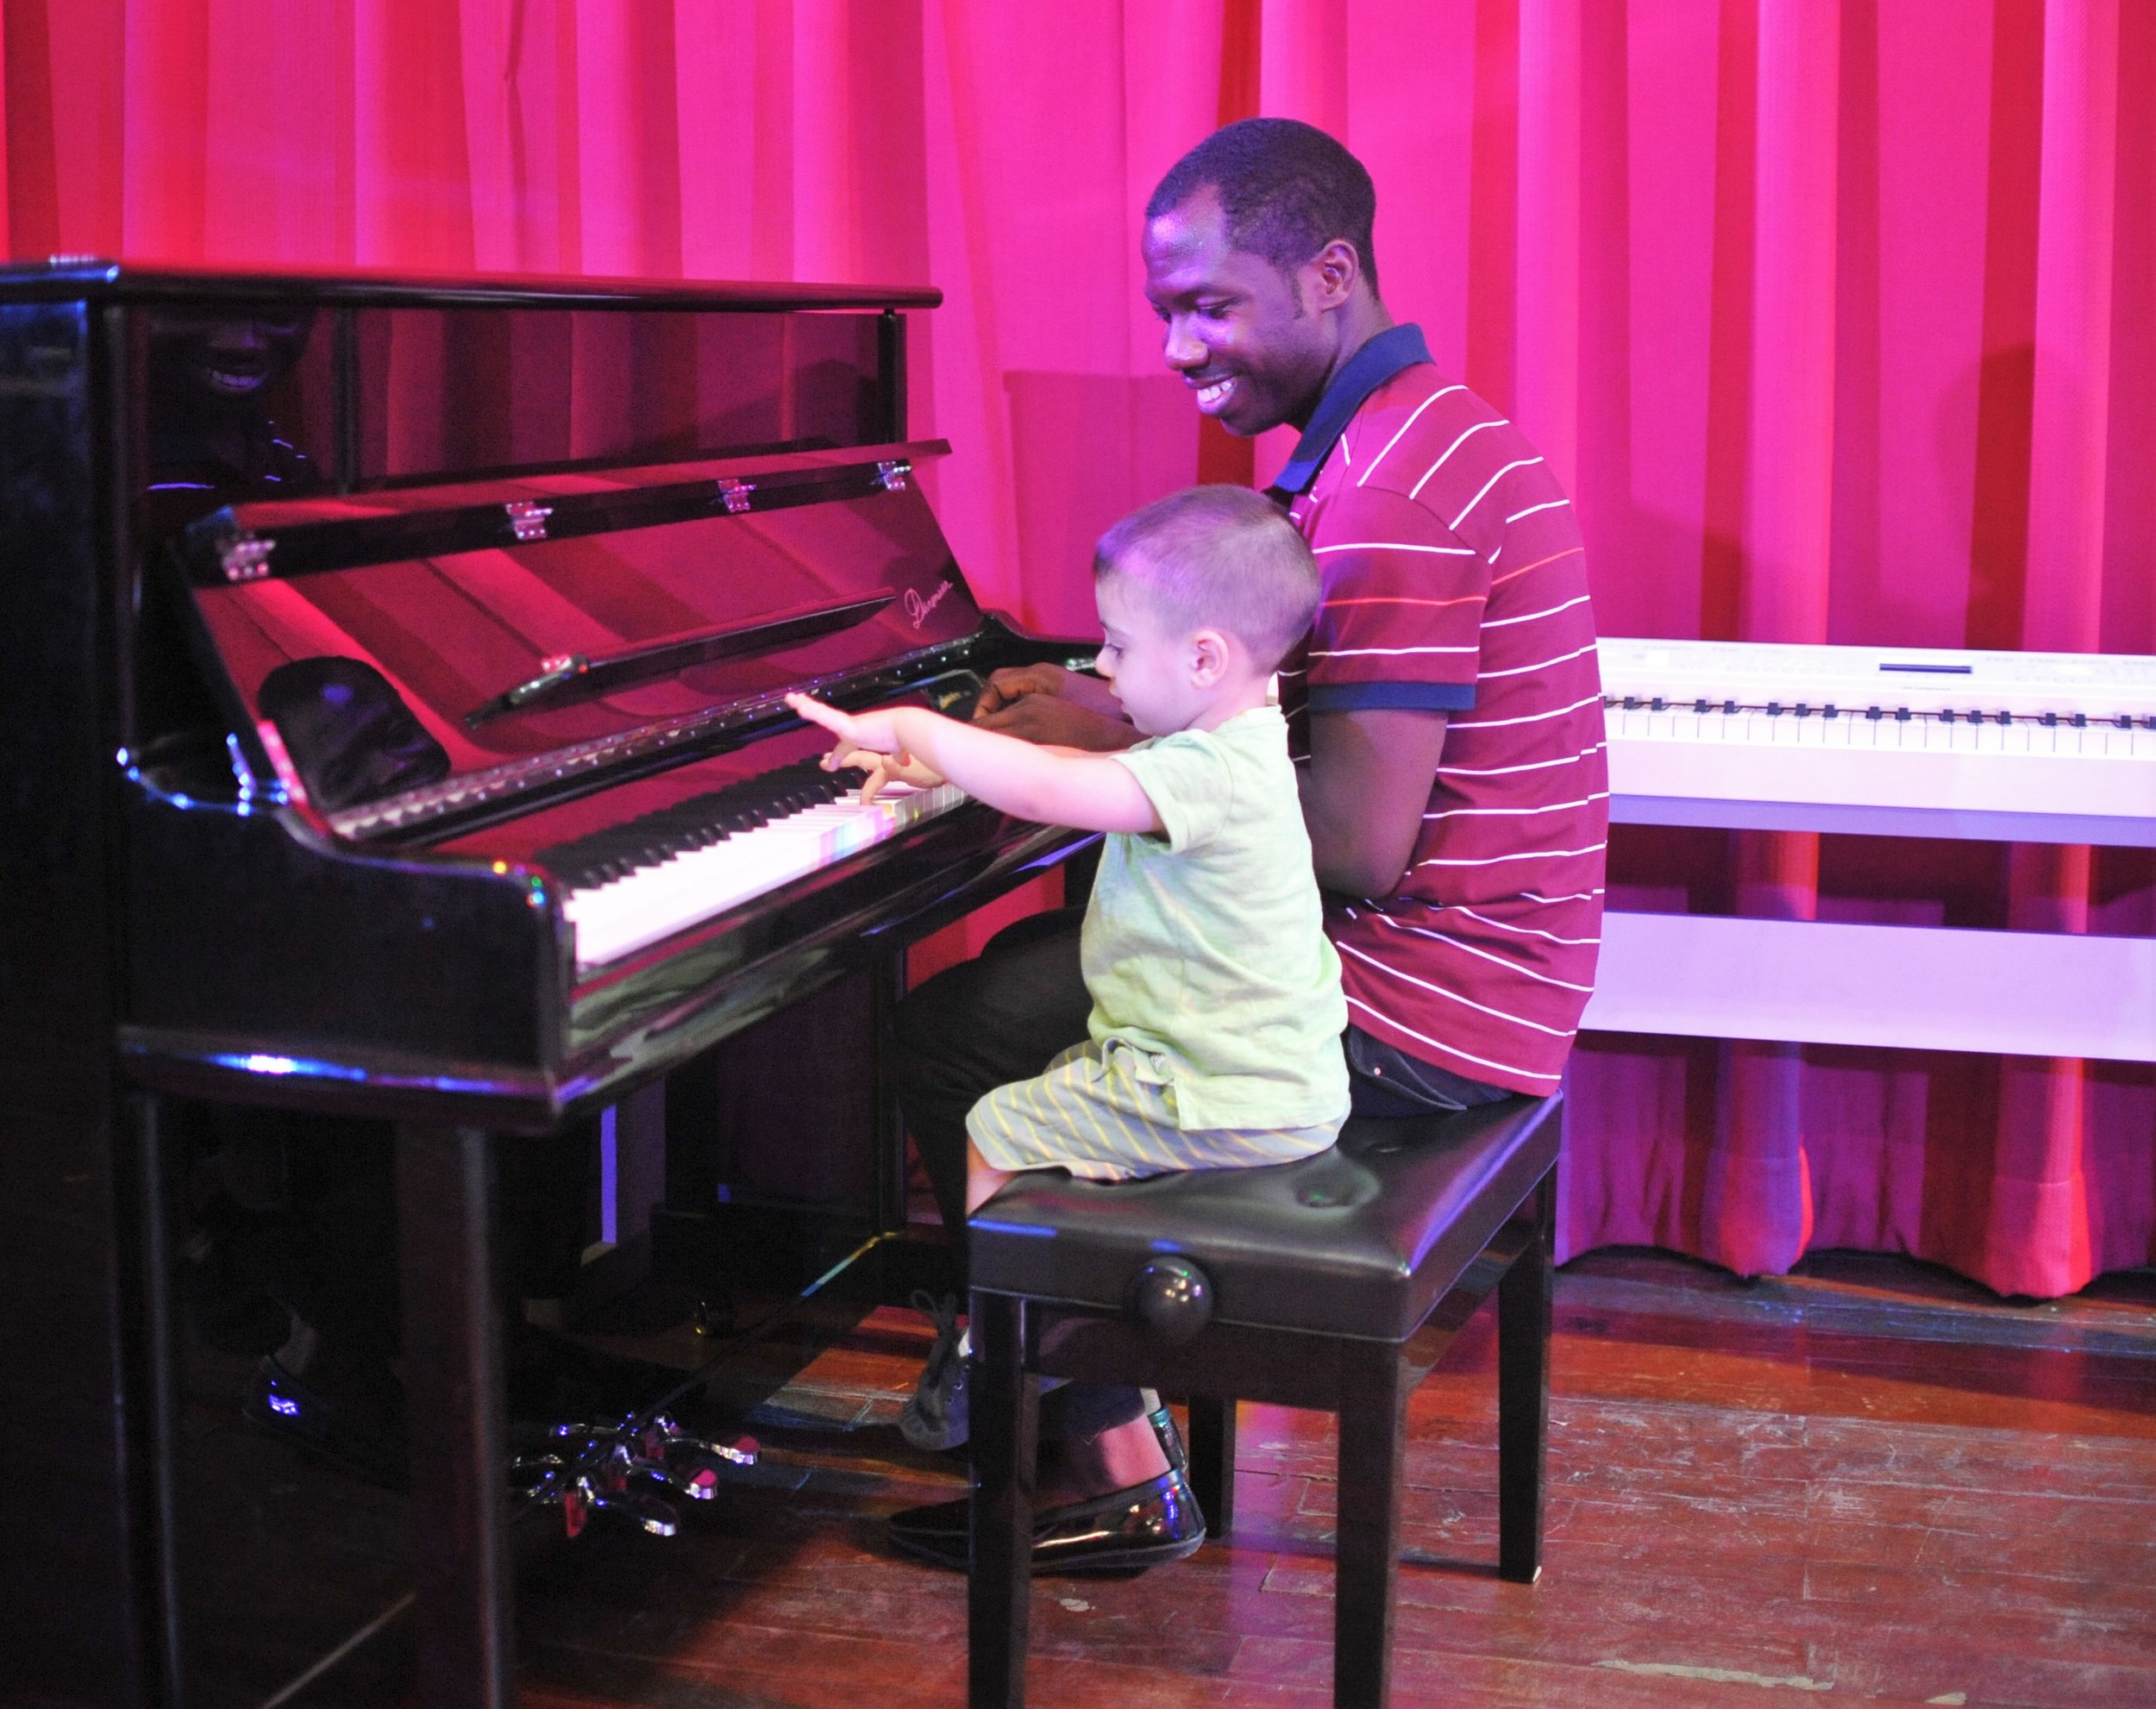 Pre-Nursery students visited JC Hall for a jam session with Mr. Joseph on piano!